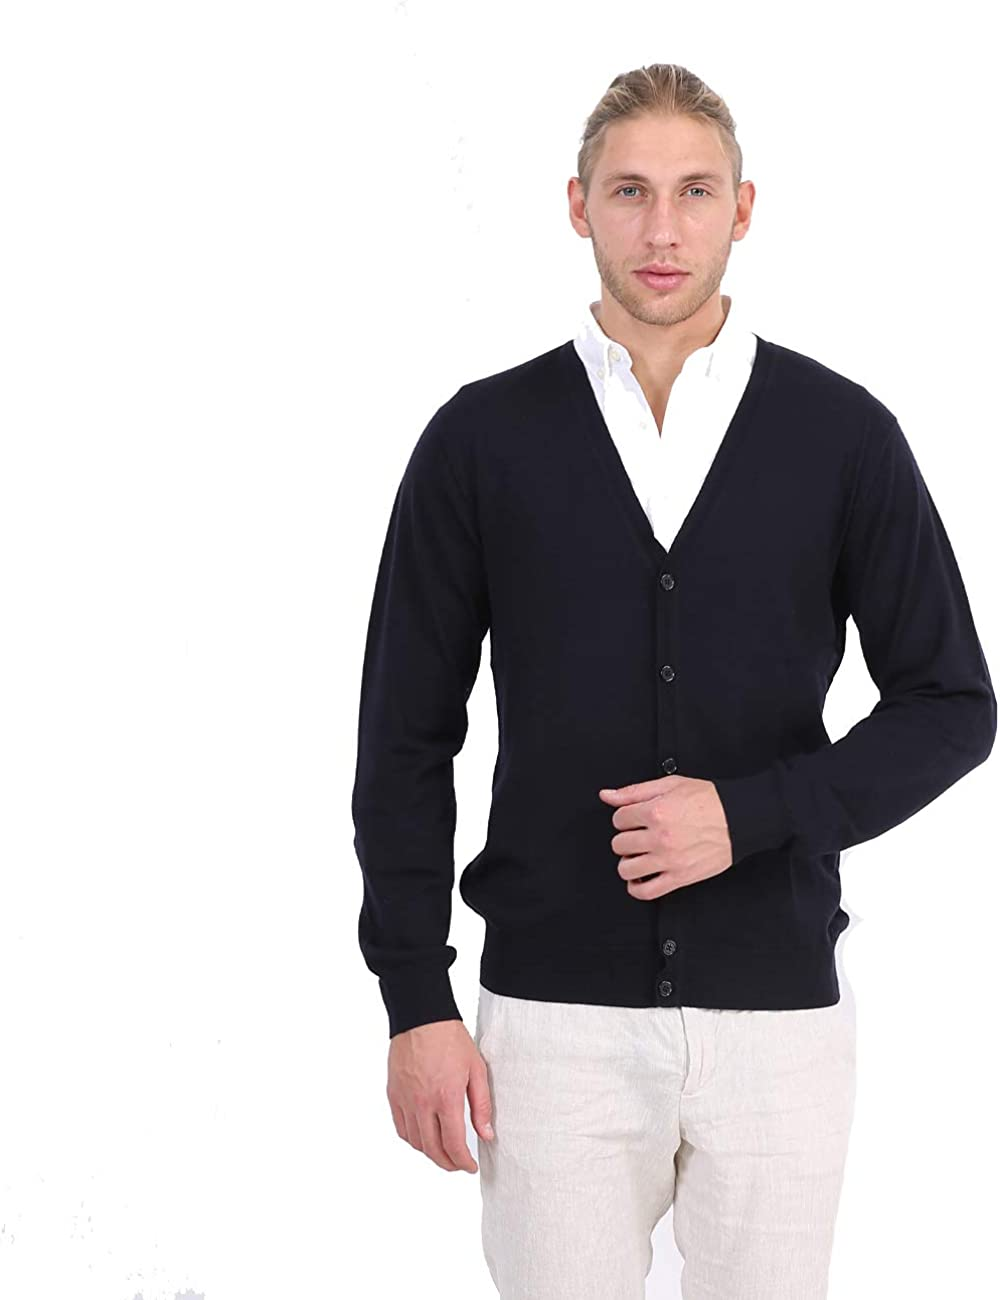 R.PRINCE Men's Merino Wool Cardigan Sweater Casual Slim Fit V-Neck Knitted Sweaters Button up